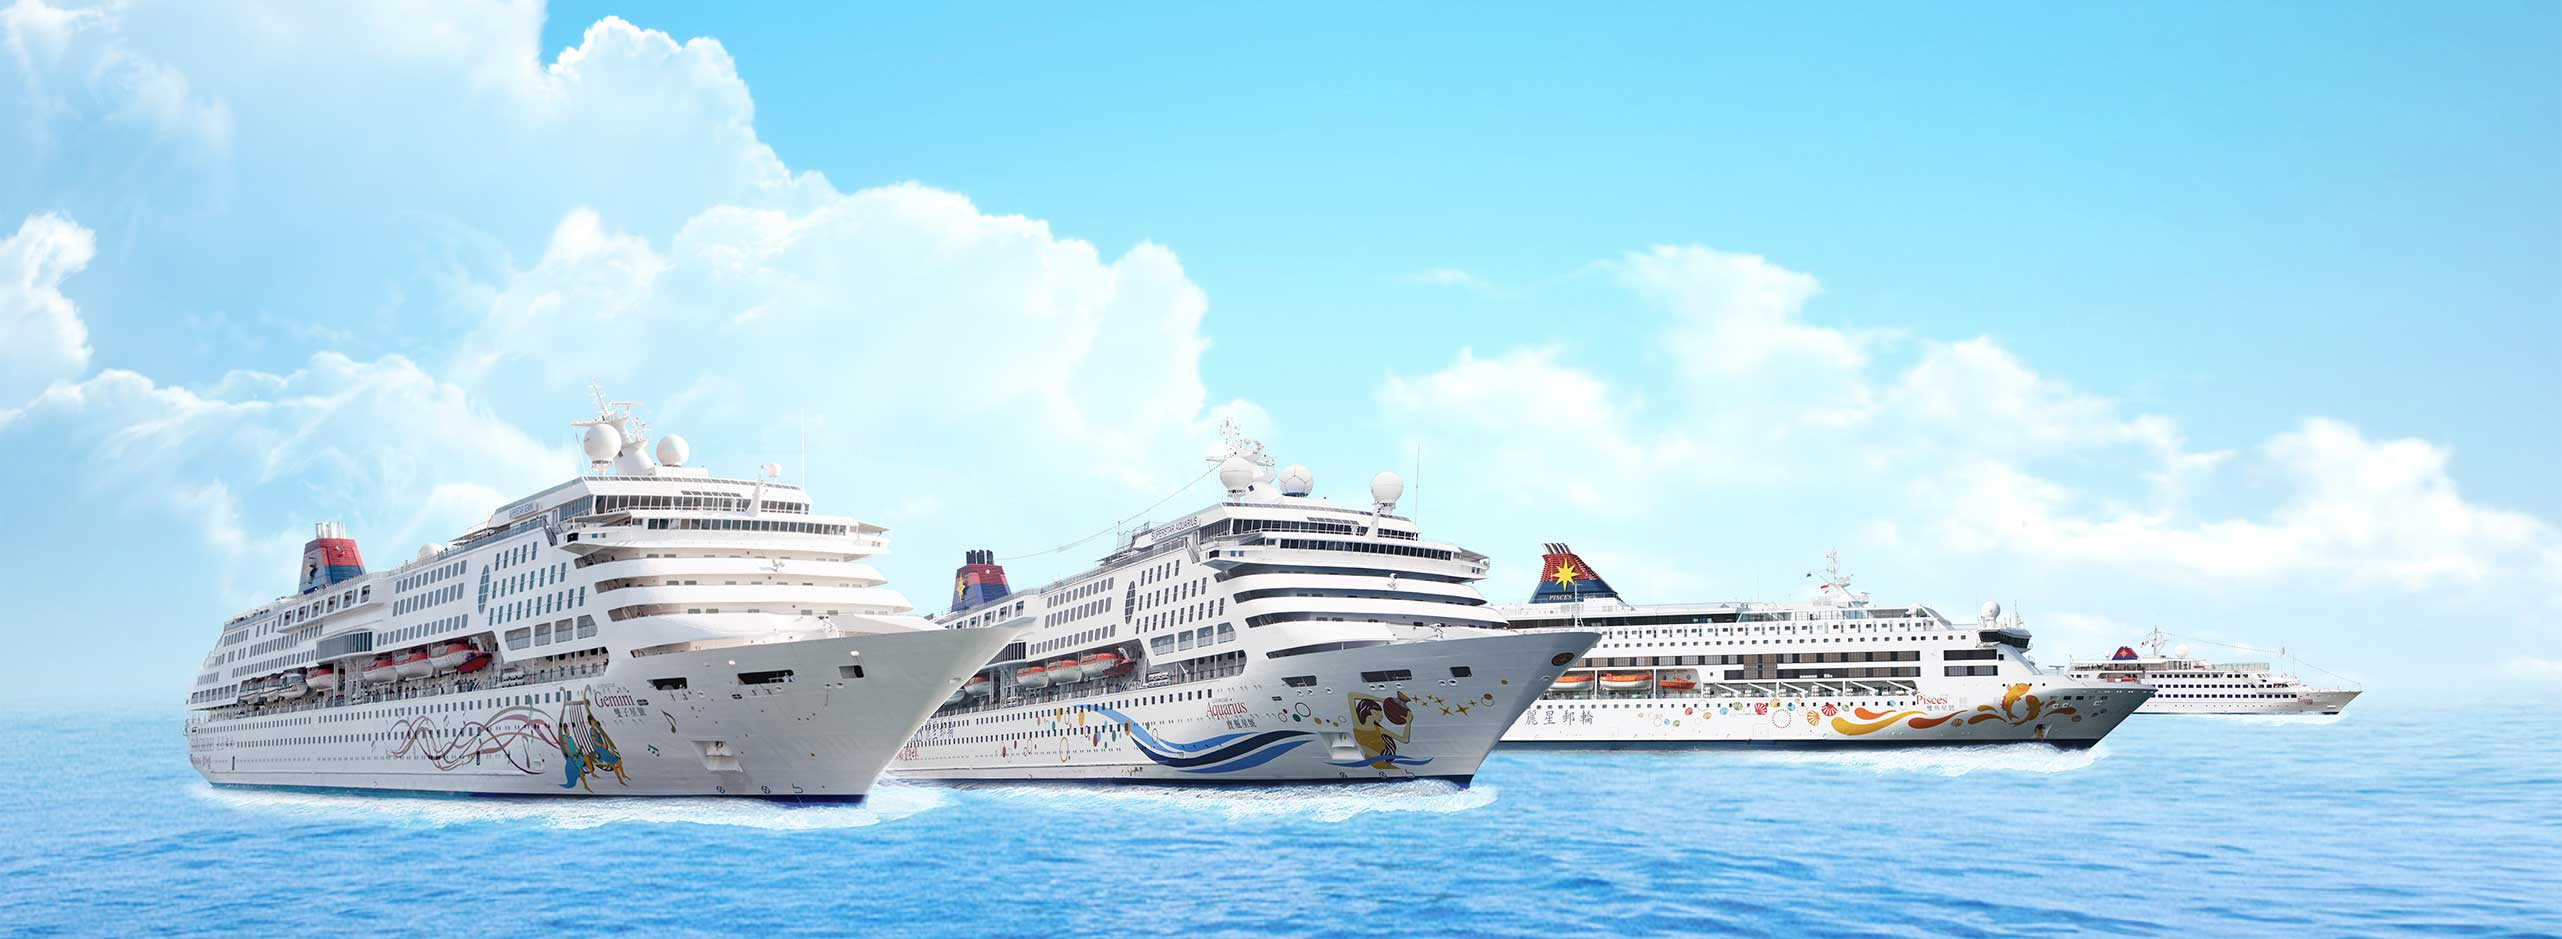 Job Opportunities | Star Cruises